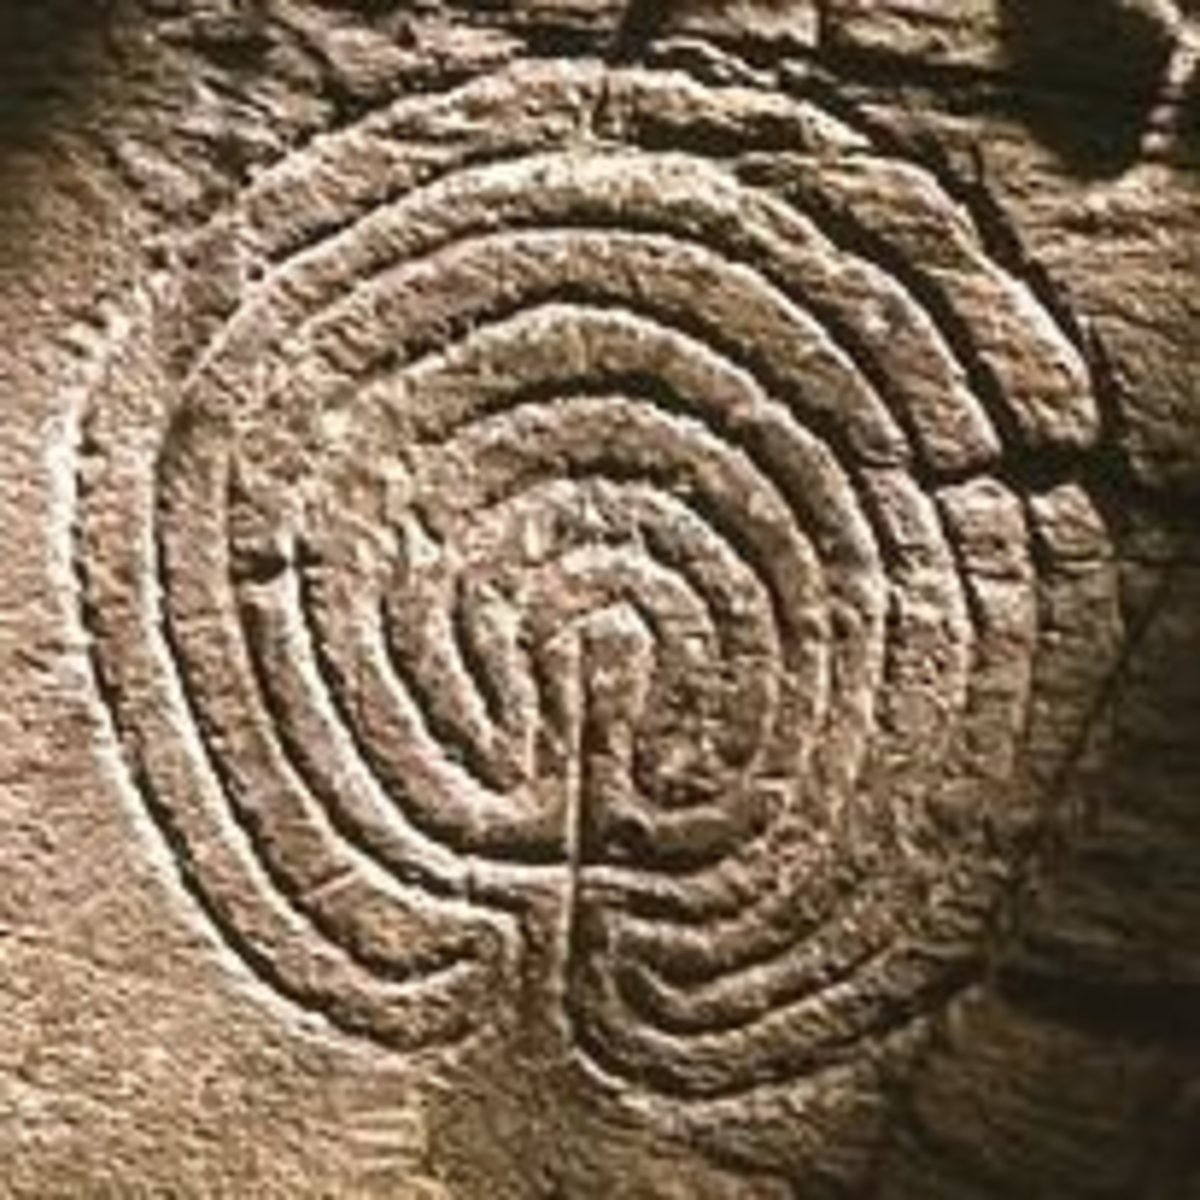 Labyrinth Symbols and Meaning | HubPages